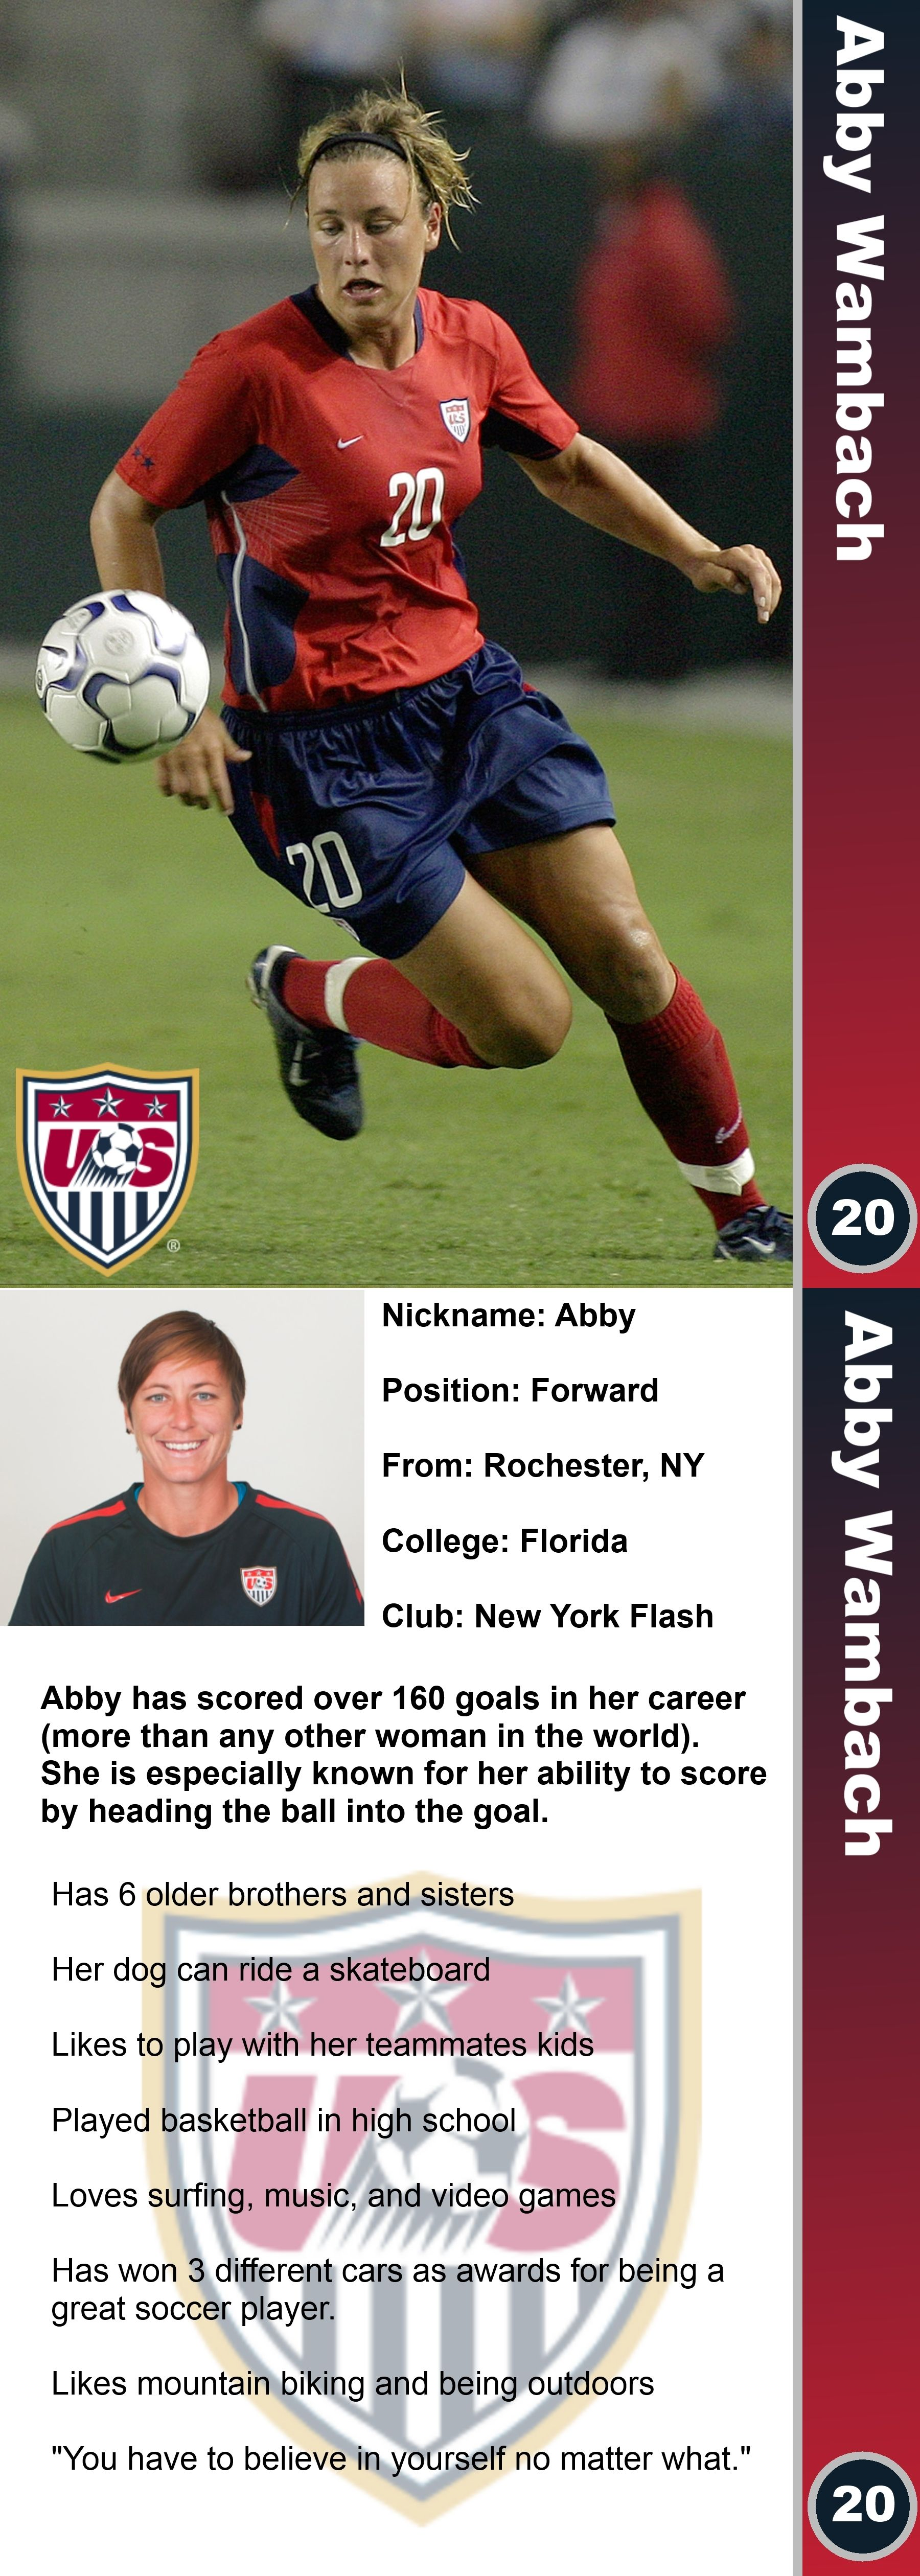 Abby Wambach Trading Card That I Made For My U8 Girls Team To Teach Them About Prominent Women S Soccer Playe Usa Soccer Women Abby Wambach Women S Soccer Team